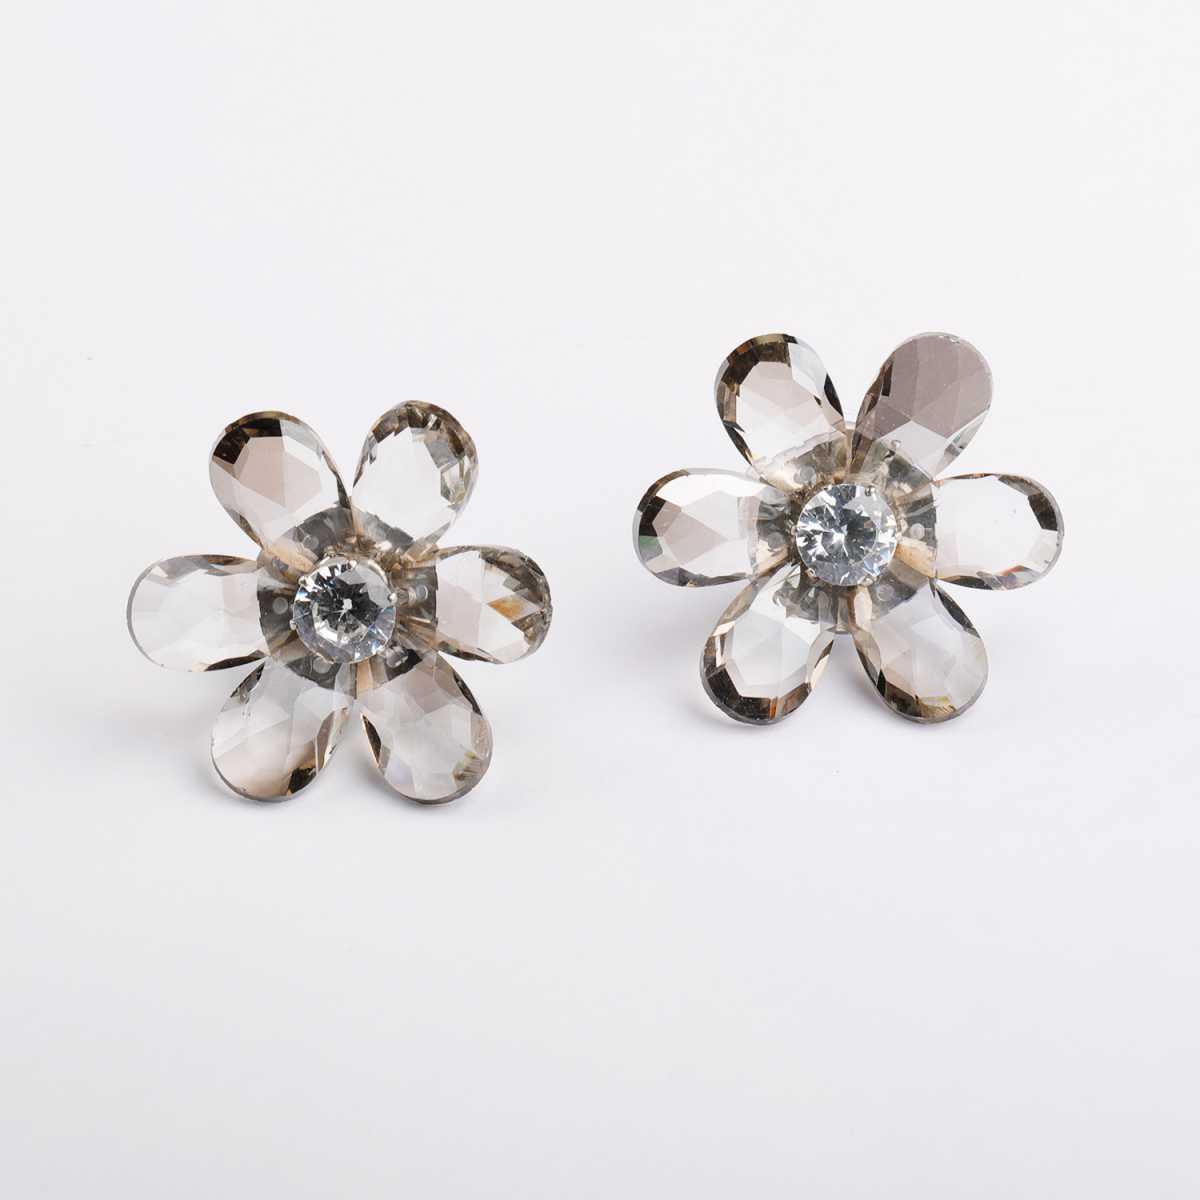 Silver Shine Fashionable White Stylish Flower Design For Girls And Women